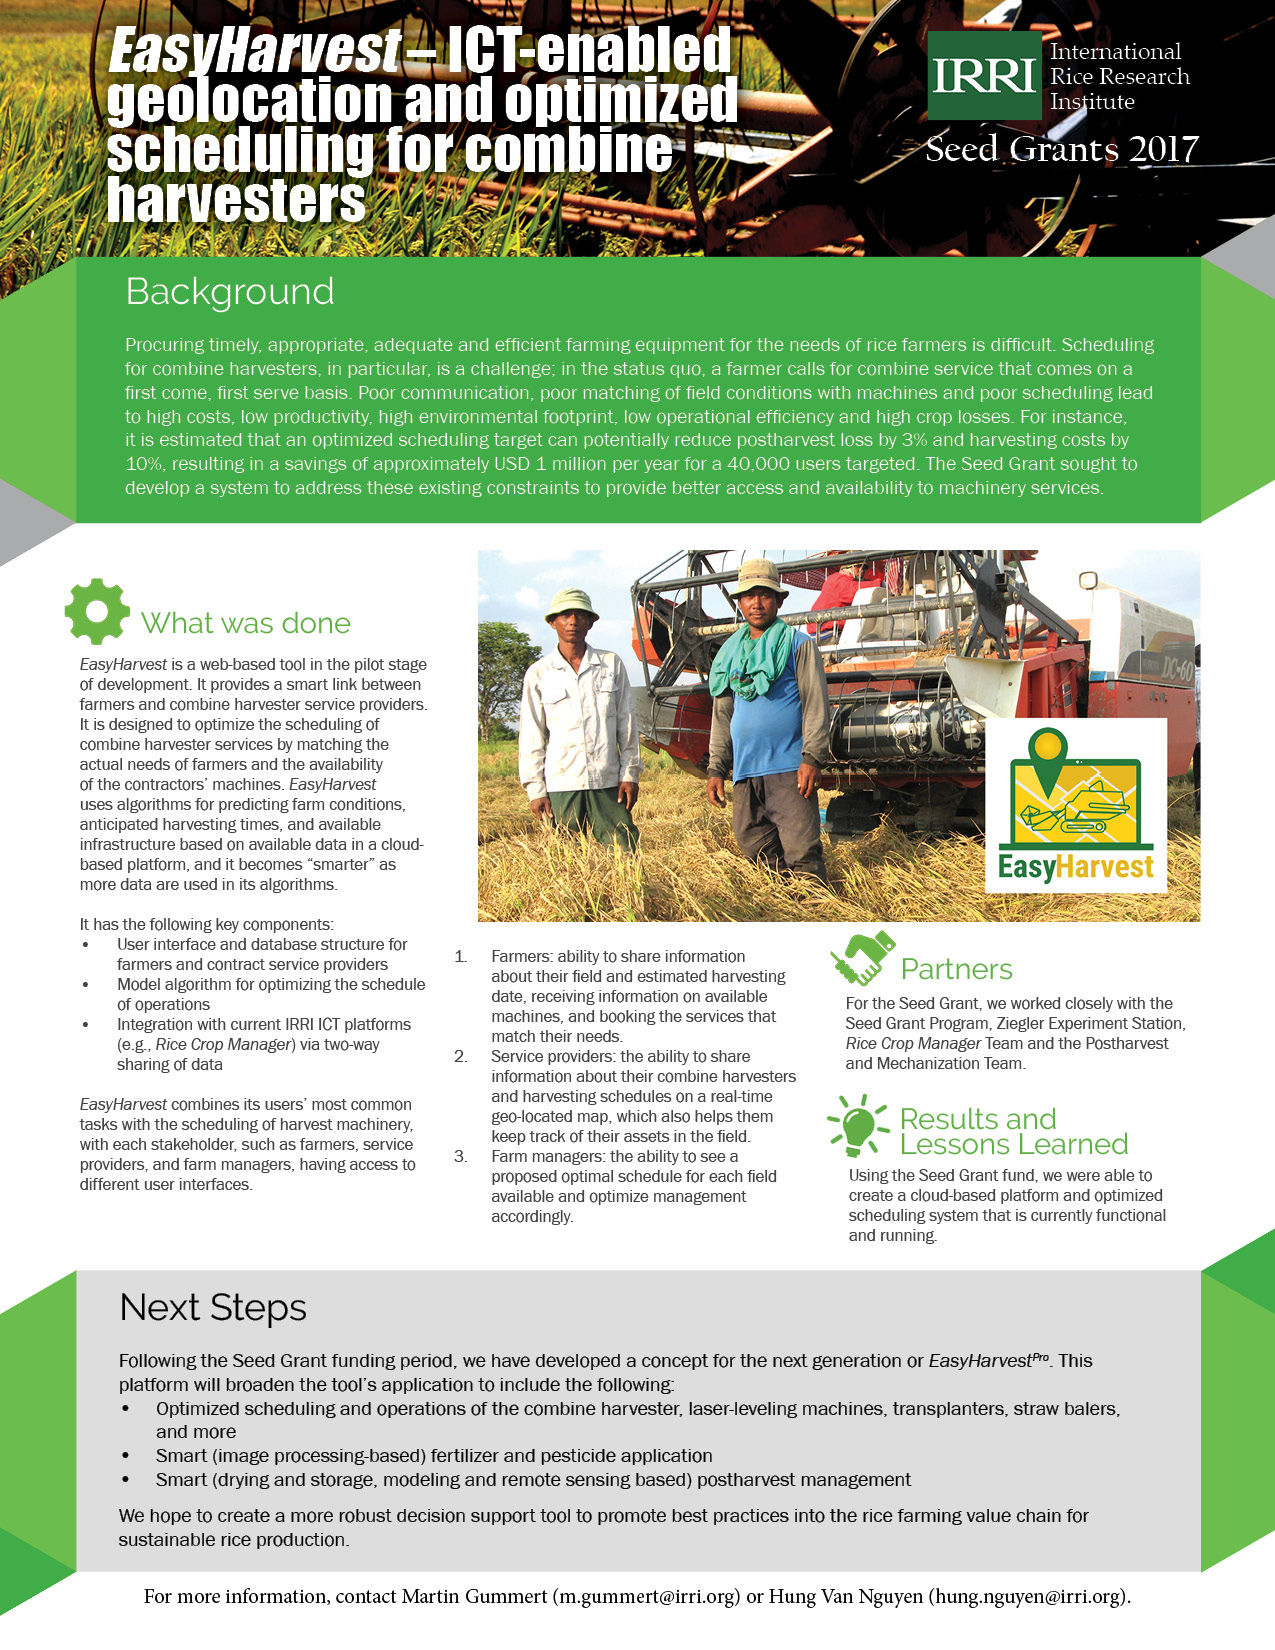 EasyHarvest – ICT-enabled geolocation and optimized scheduling for combine harvesters (Click to enlarge.)